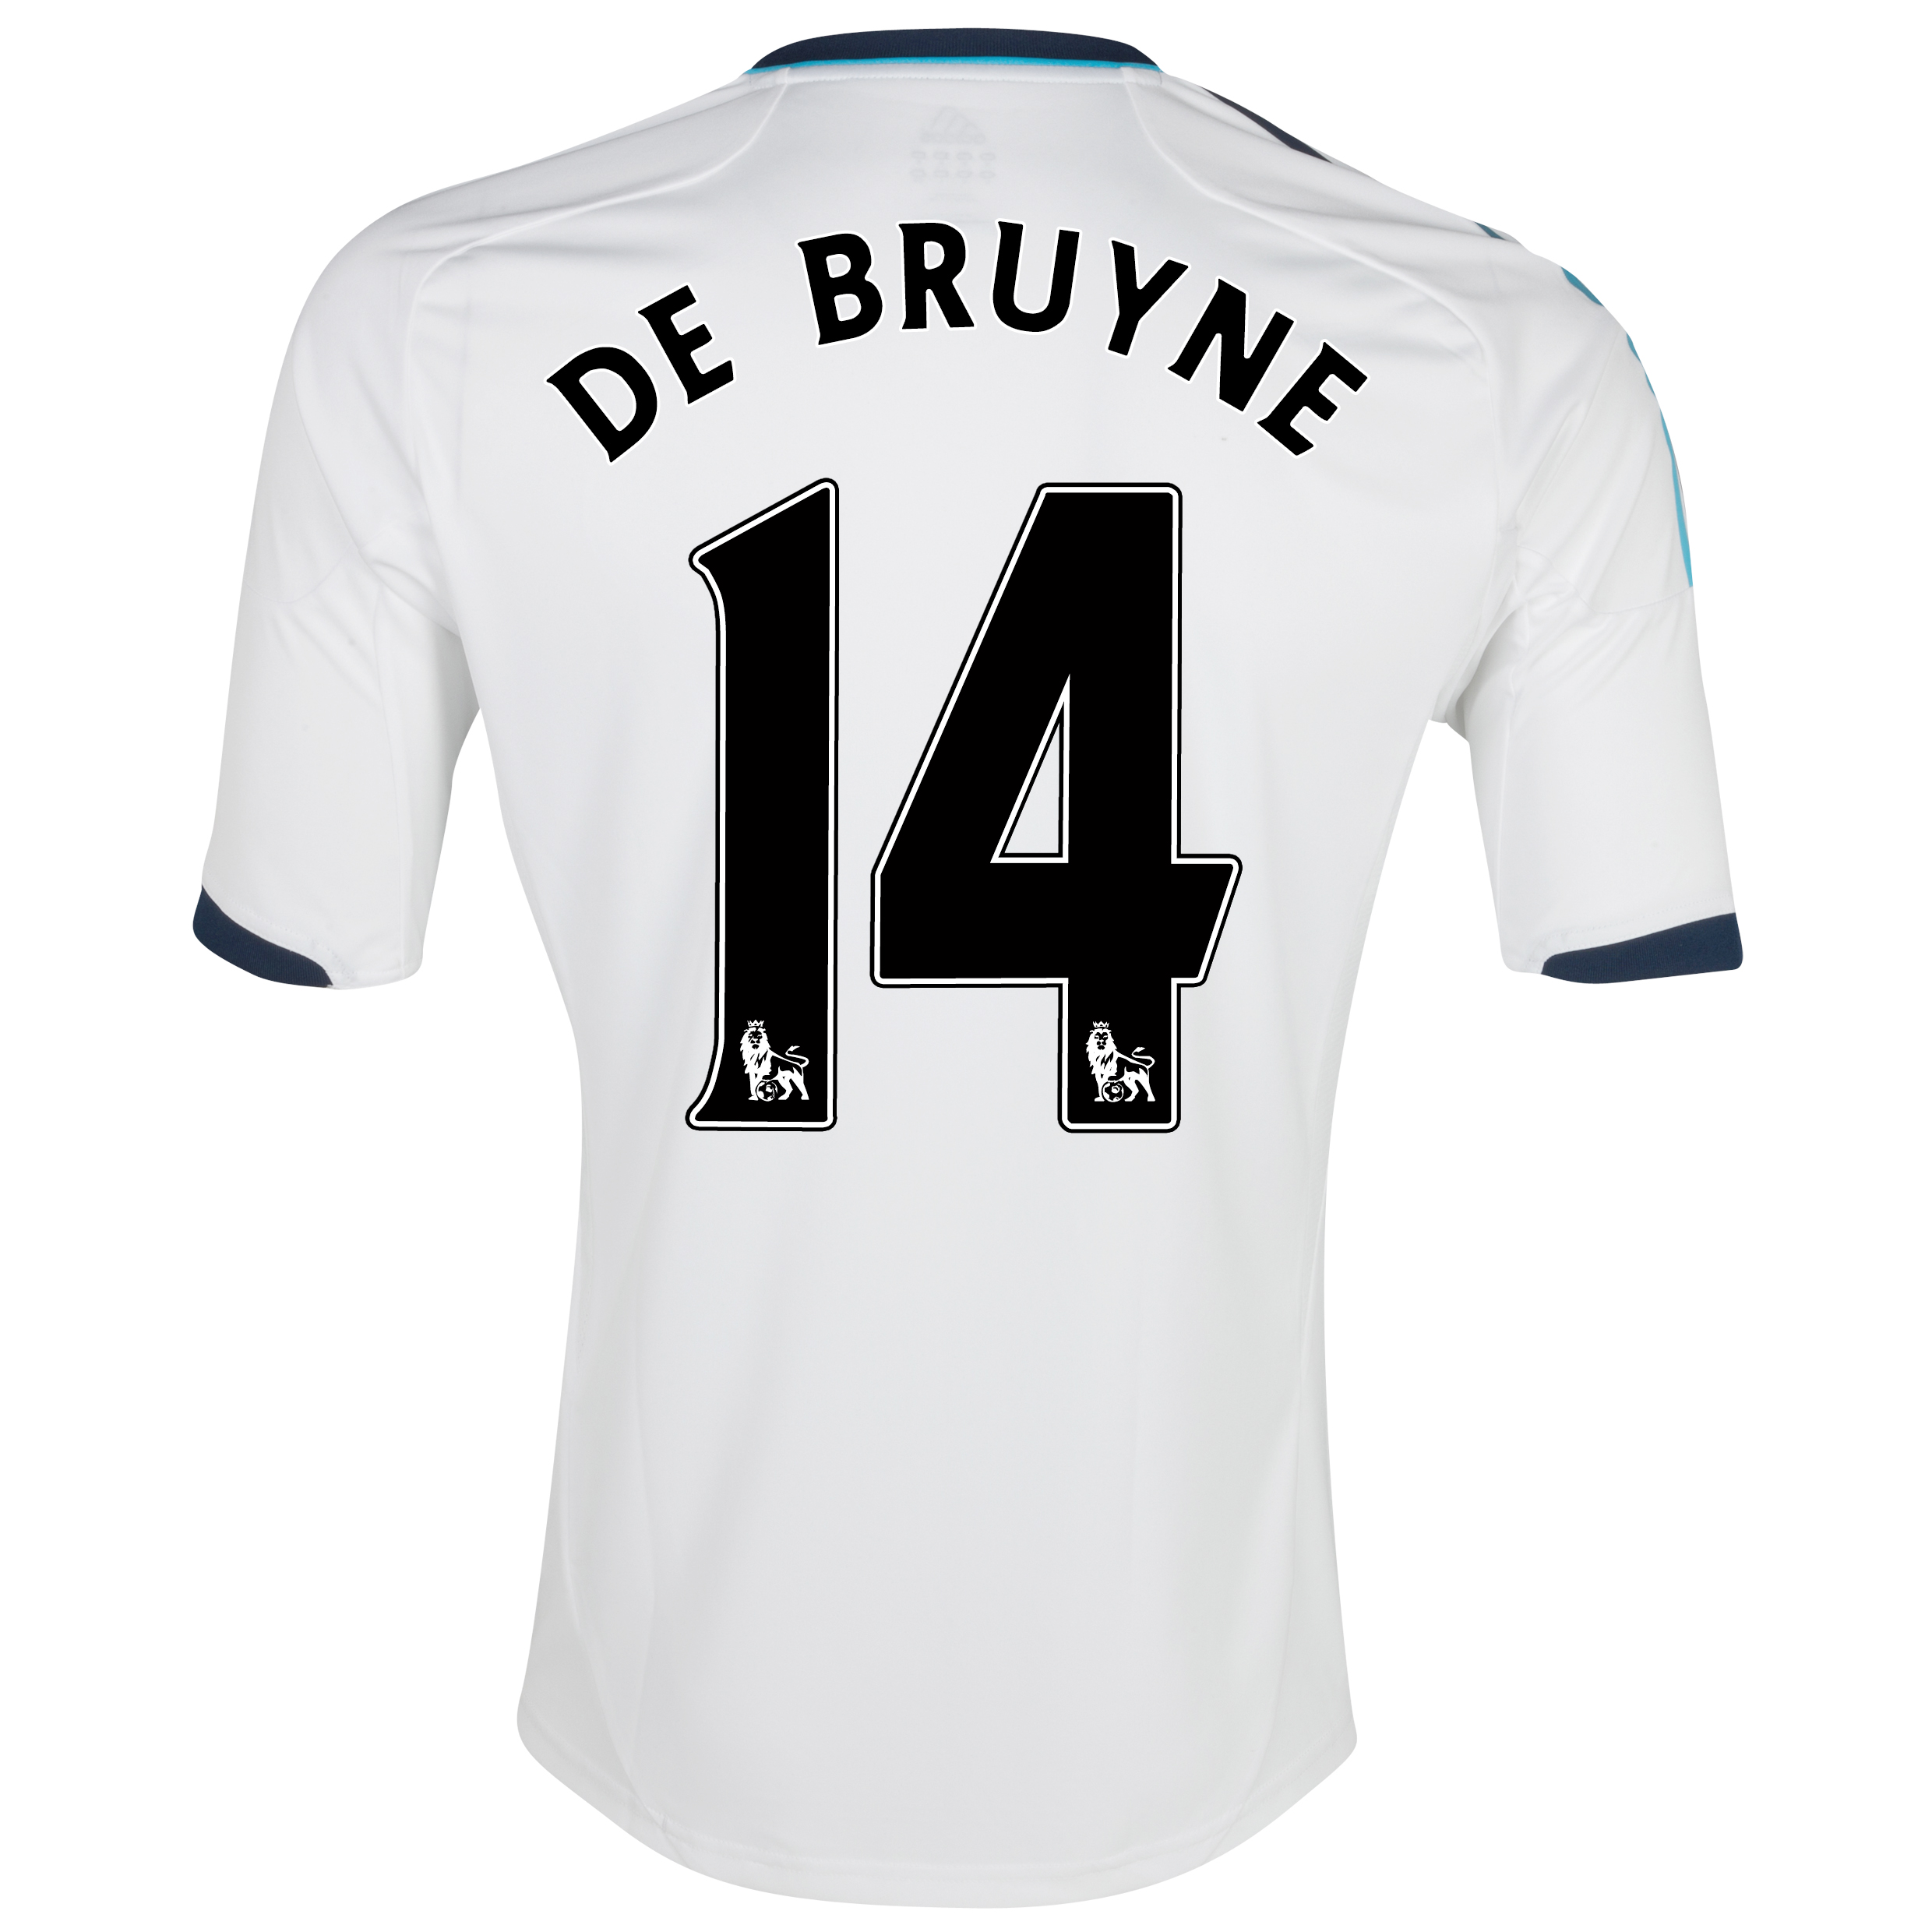 Chelsea Away Shirt 2012/13 with De Bruyne 14 printing